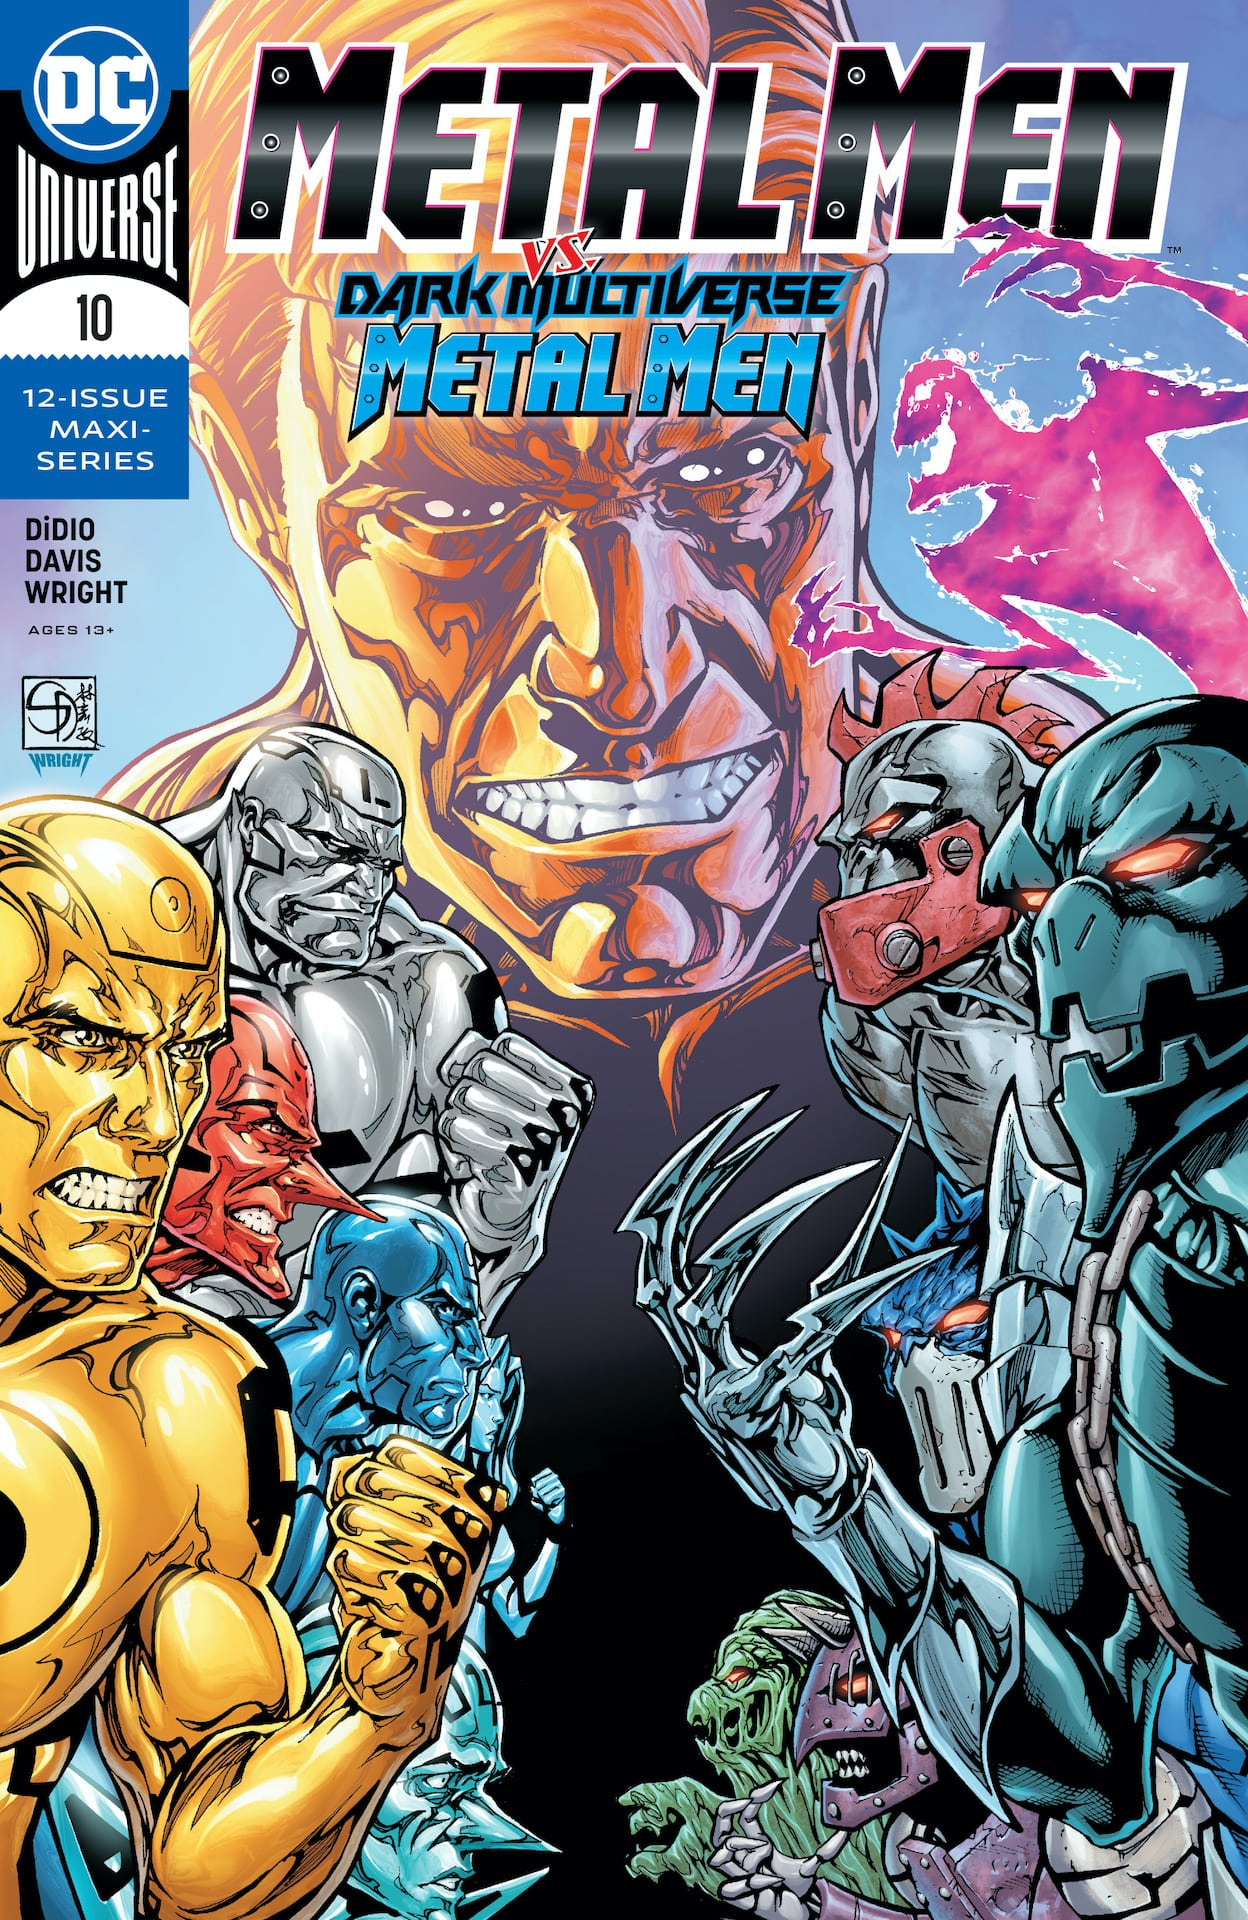 In this issue, it's the startling secret origin of the Nth Metal Man!